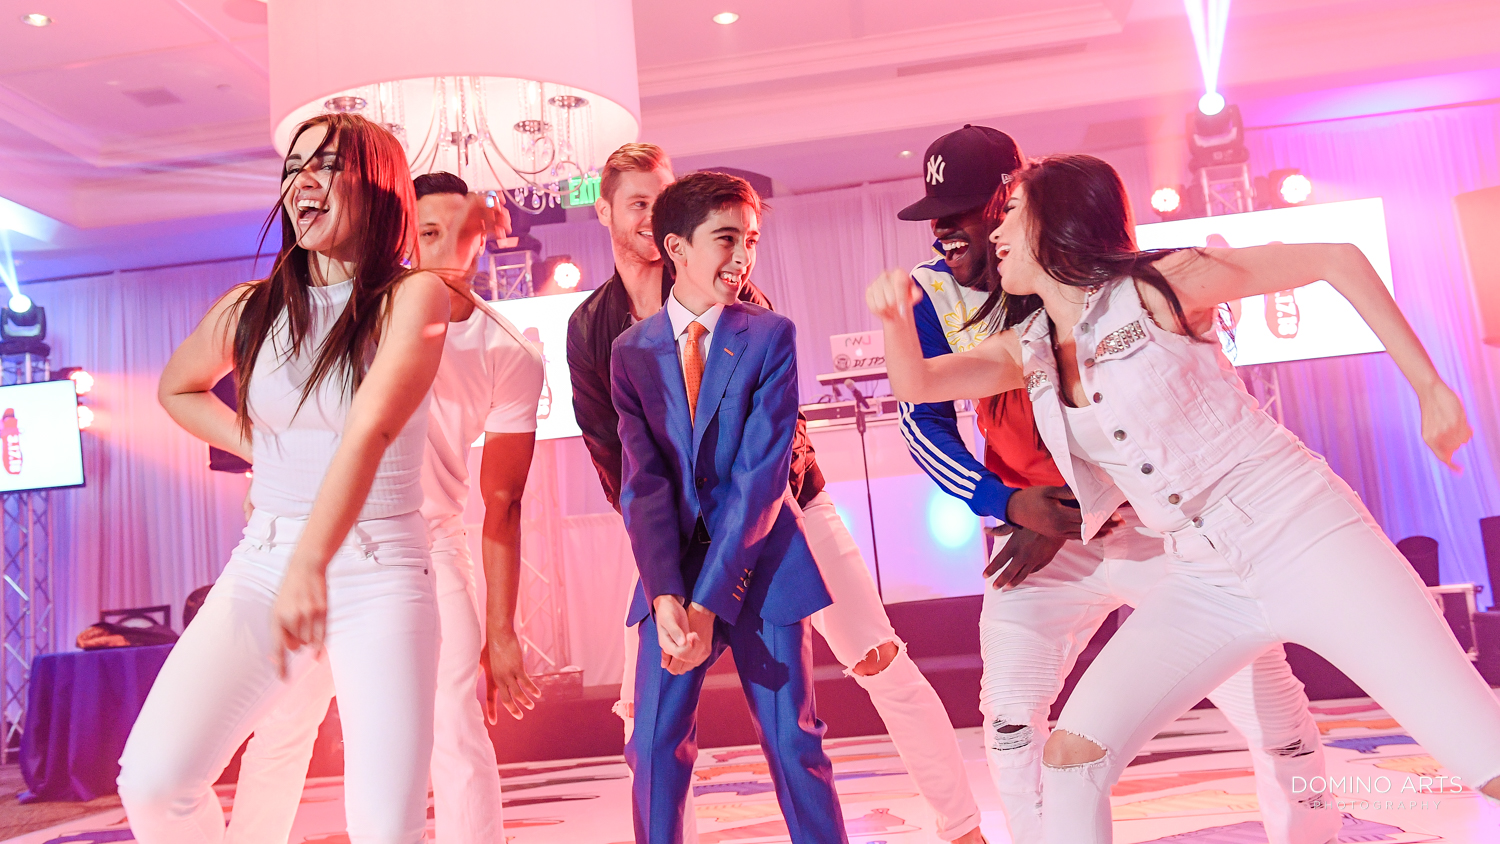 Best Mitzvah entertainment Fun Mitzvah Boy Pictures on Dance Floor at Delaire Country Club